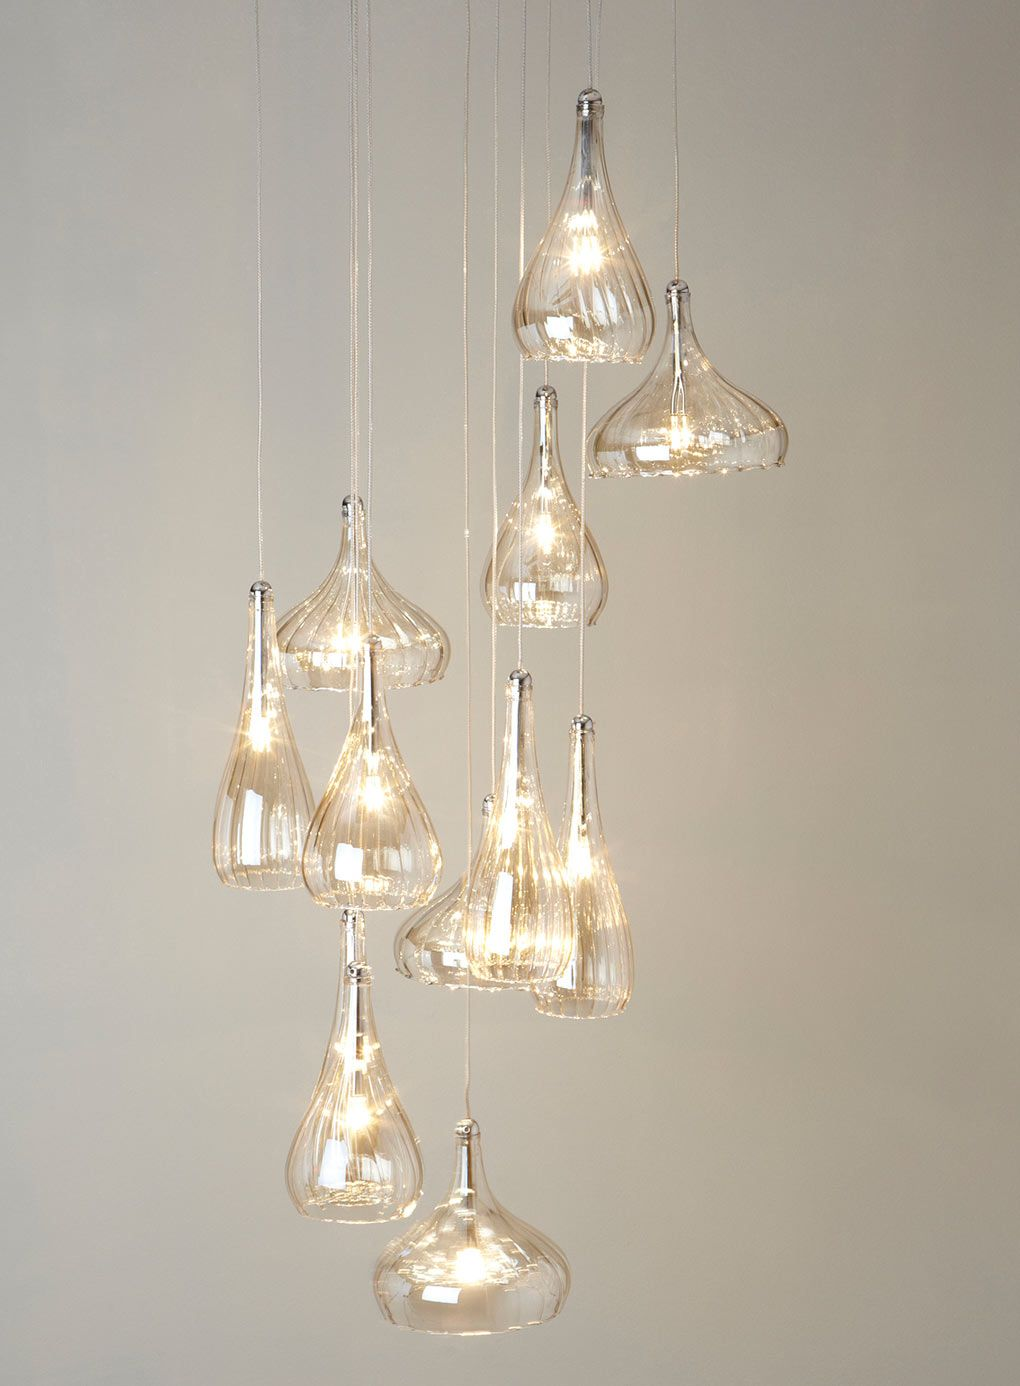 Long Drop Ceiling Light Fittings ~ Lighting on Pinterest | 63 Pins ... for Roof Lamp Design  177nar